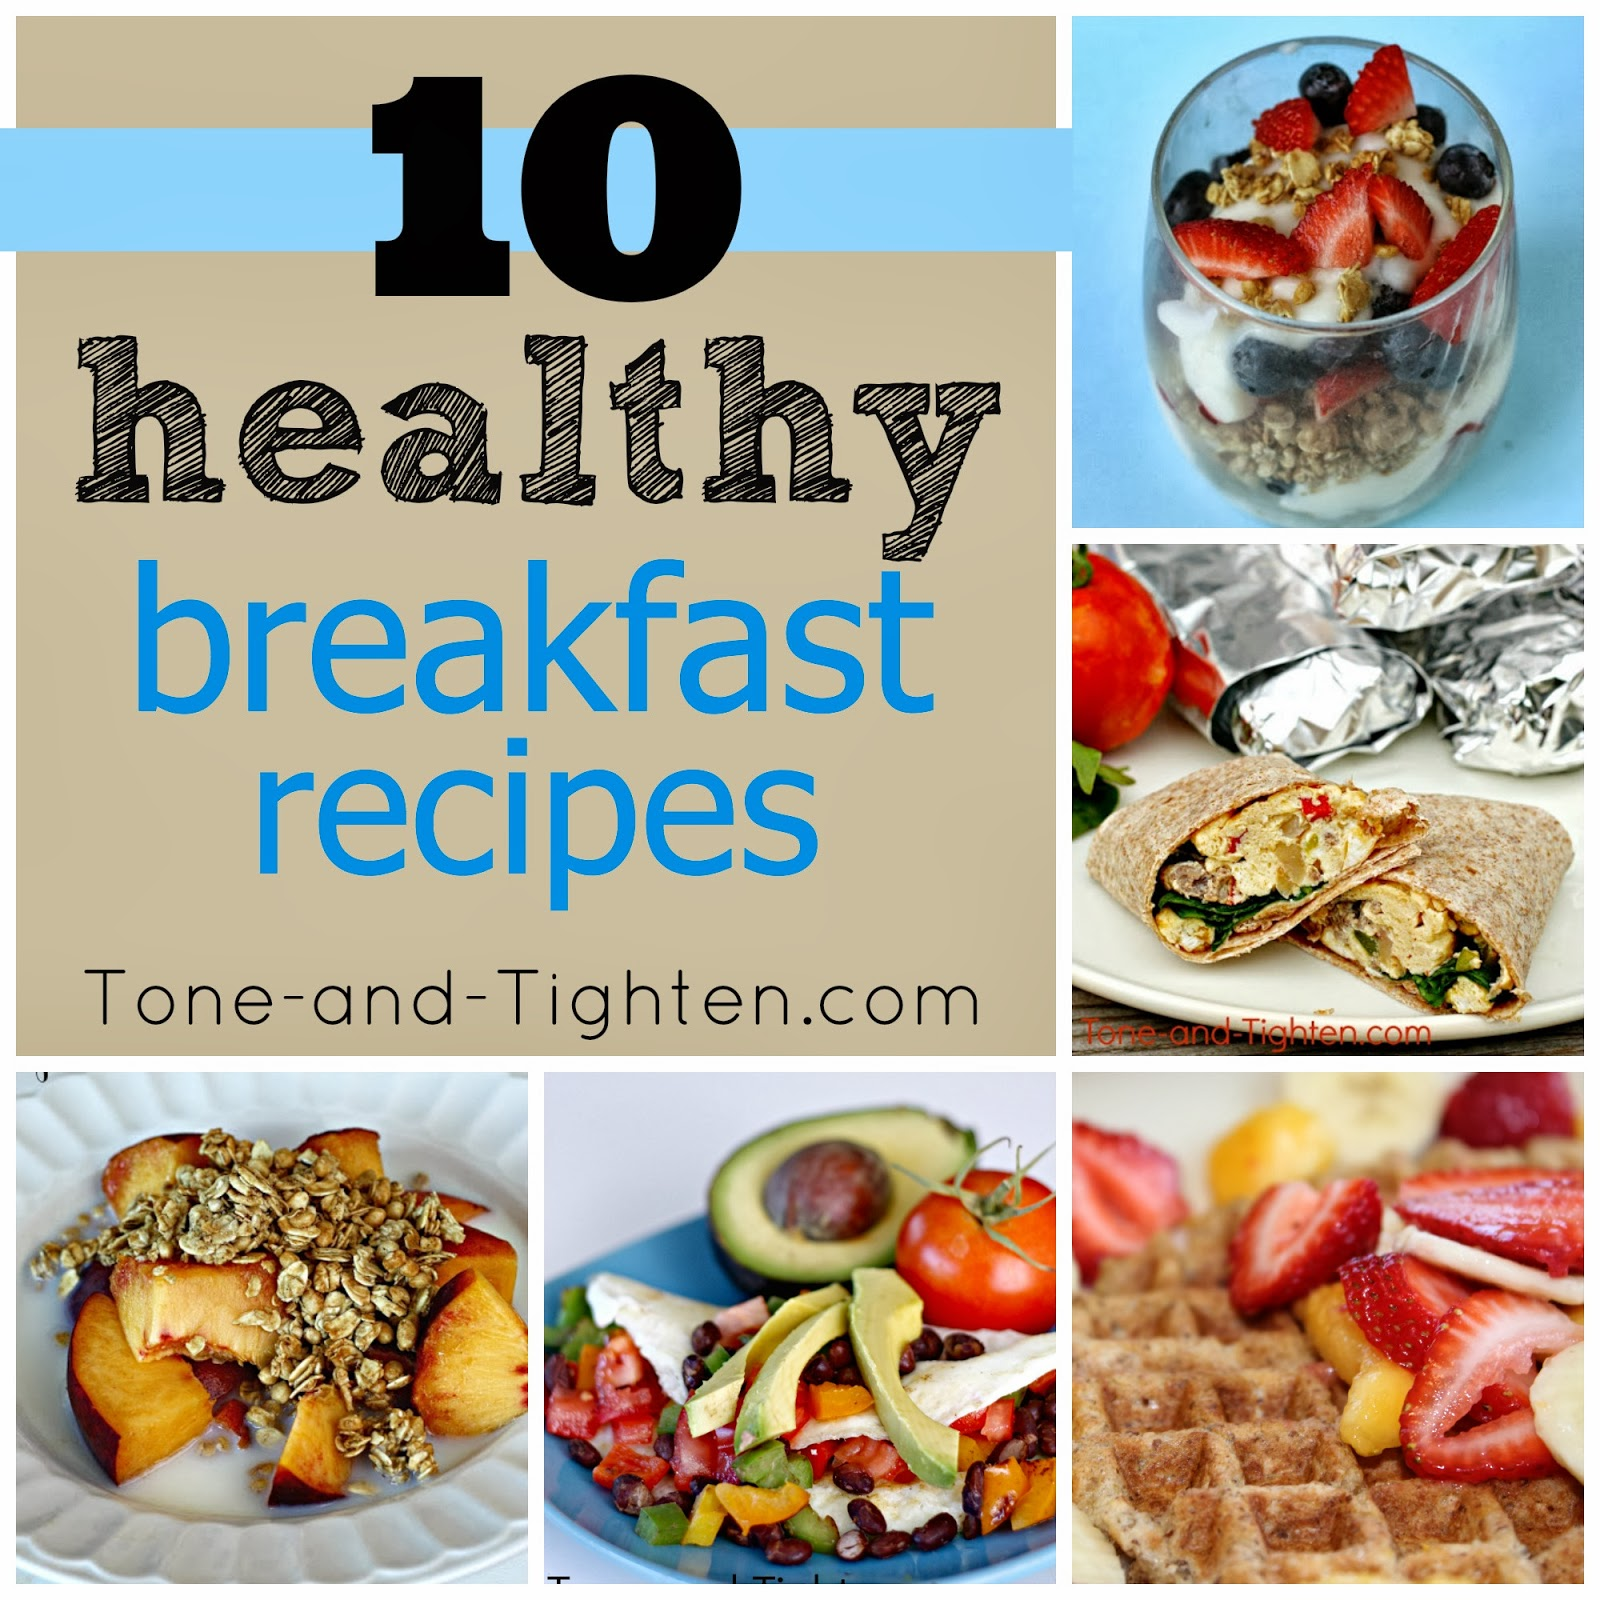 Discussion on this topic: 10 Workout Snacks to Take On-The-Go, 10-workout-snacks-to-take-on-the-go/